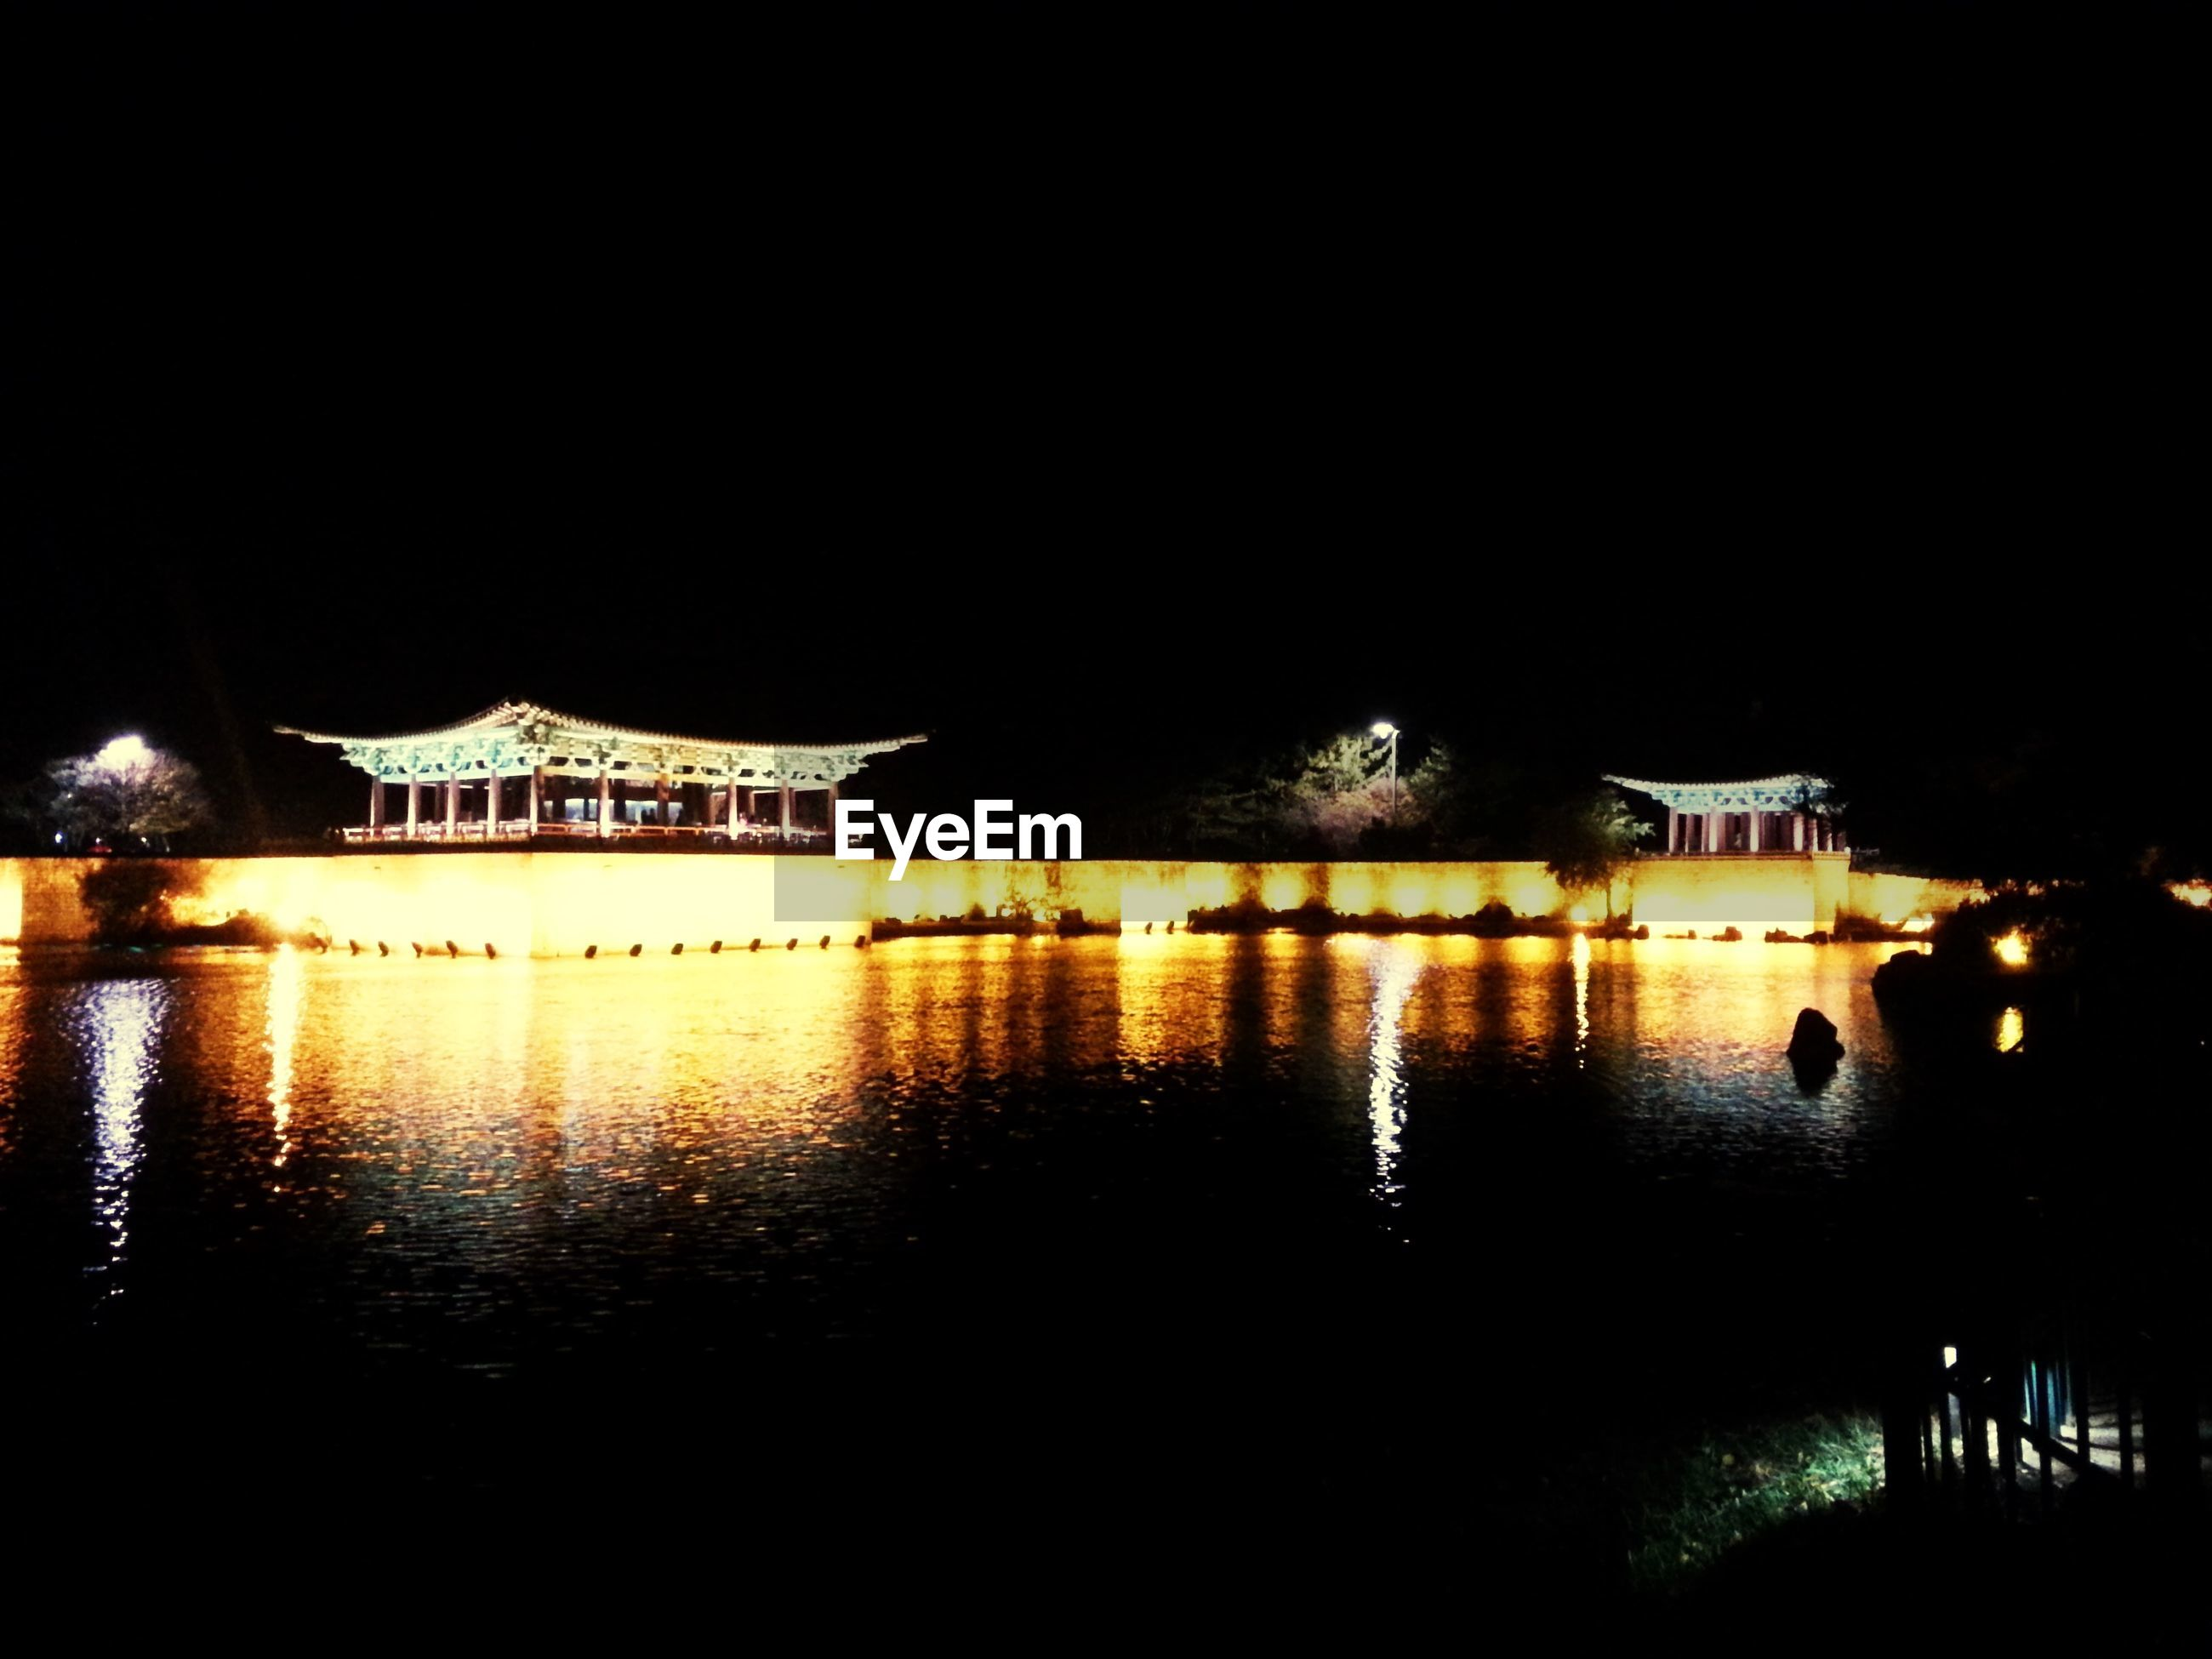 architecture, night, built structure, building exterior, illuminated, water, reflection, clear sky, waterfront, copy space, river, city, dark, outdoors, sky, house, no people, history, building, canal